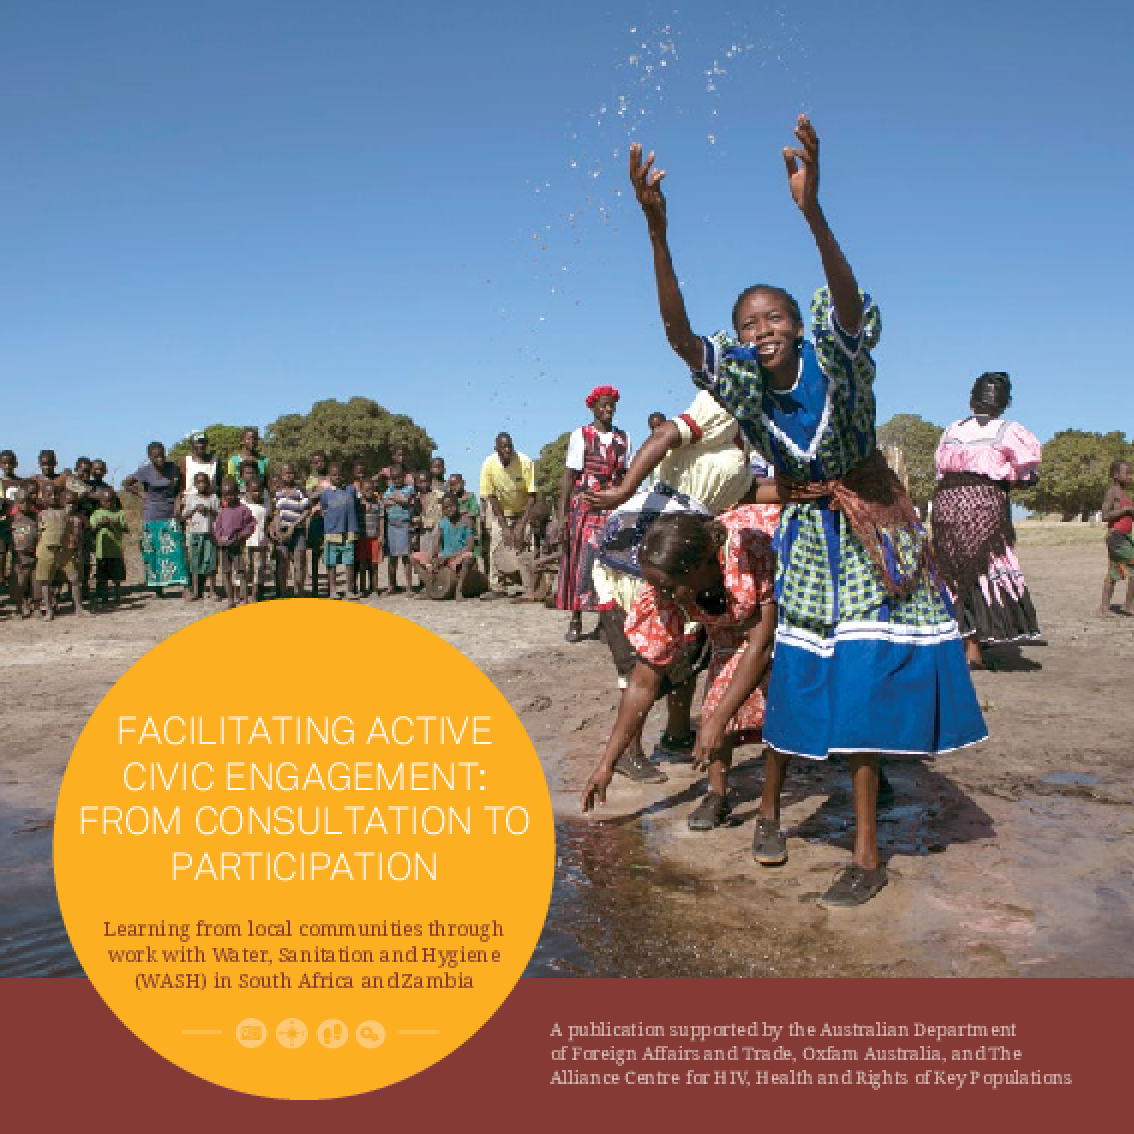 Facilitating Active Civic Engagement - From Consultation to Participation: Learning from local communities through work with Water, Sanitation and Hygiene (WASH) in South Africa and Zambia